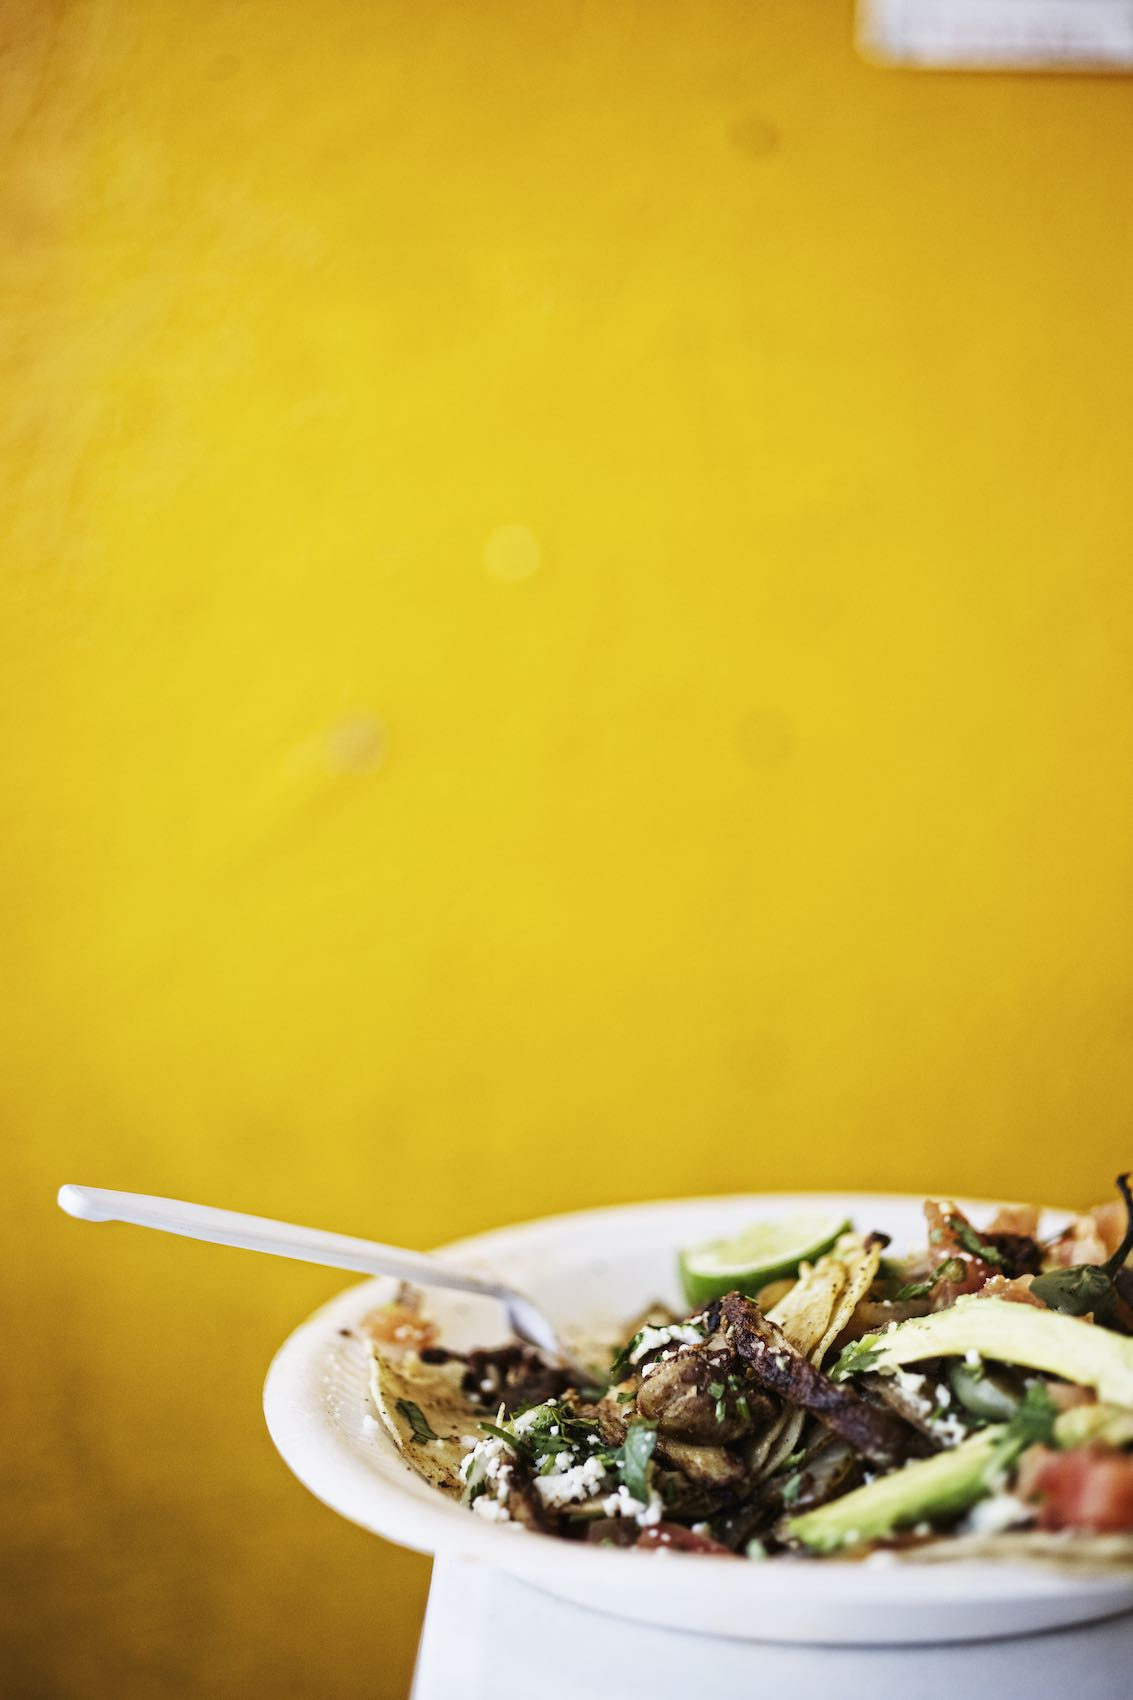 Jody Horton Photography - Mexican dish on plastic plate against bright yellow wall.